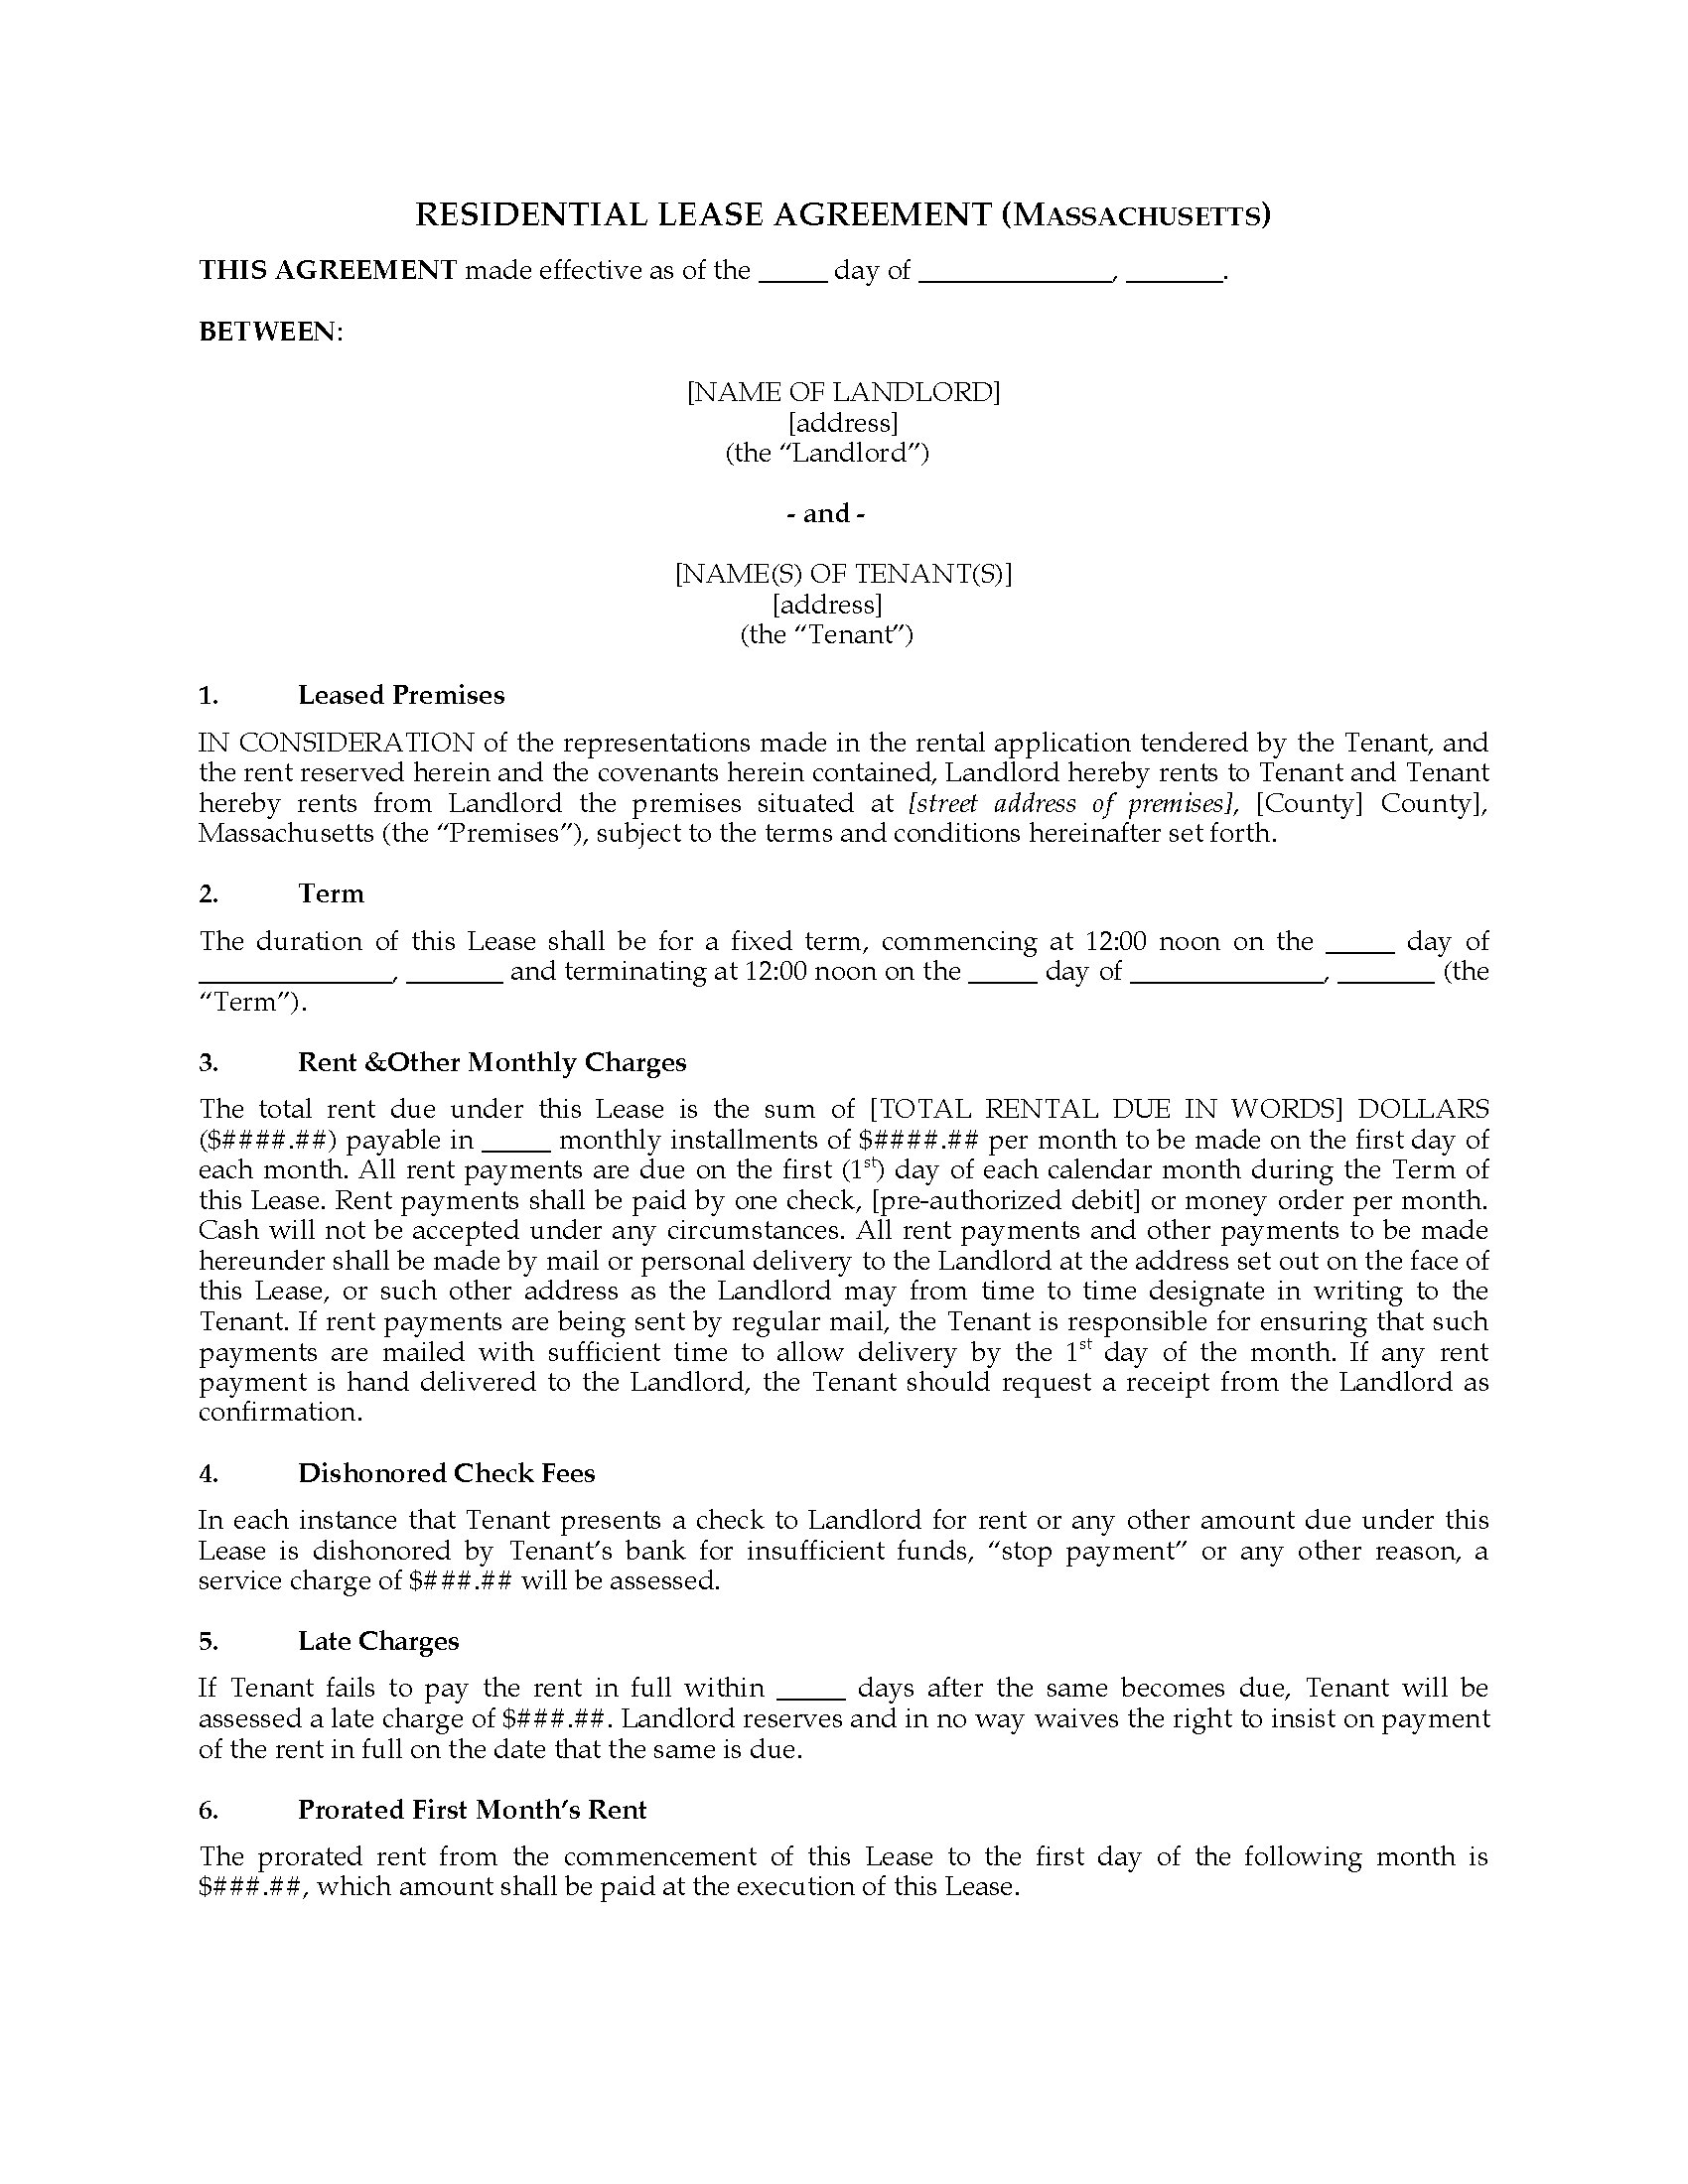 Massachusetts Fixed Term Residential Lease Agreement Legal Forms